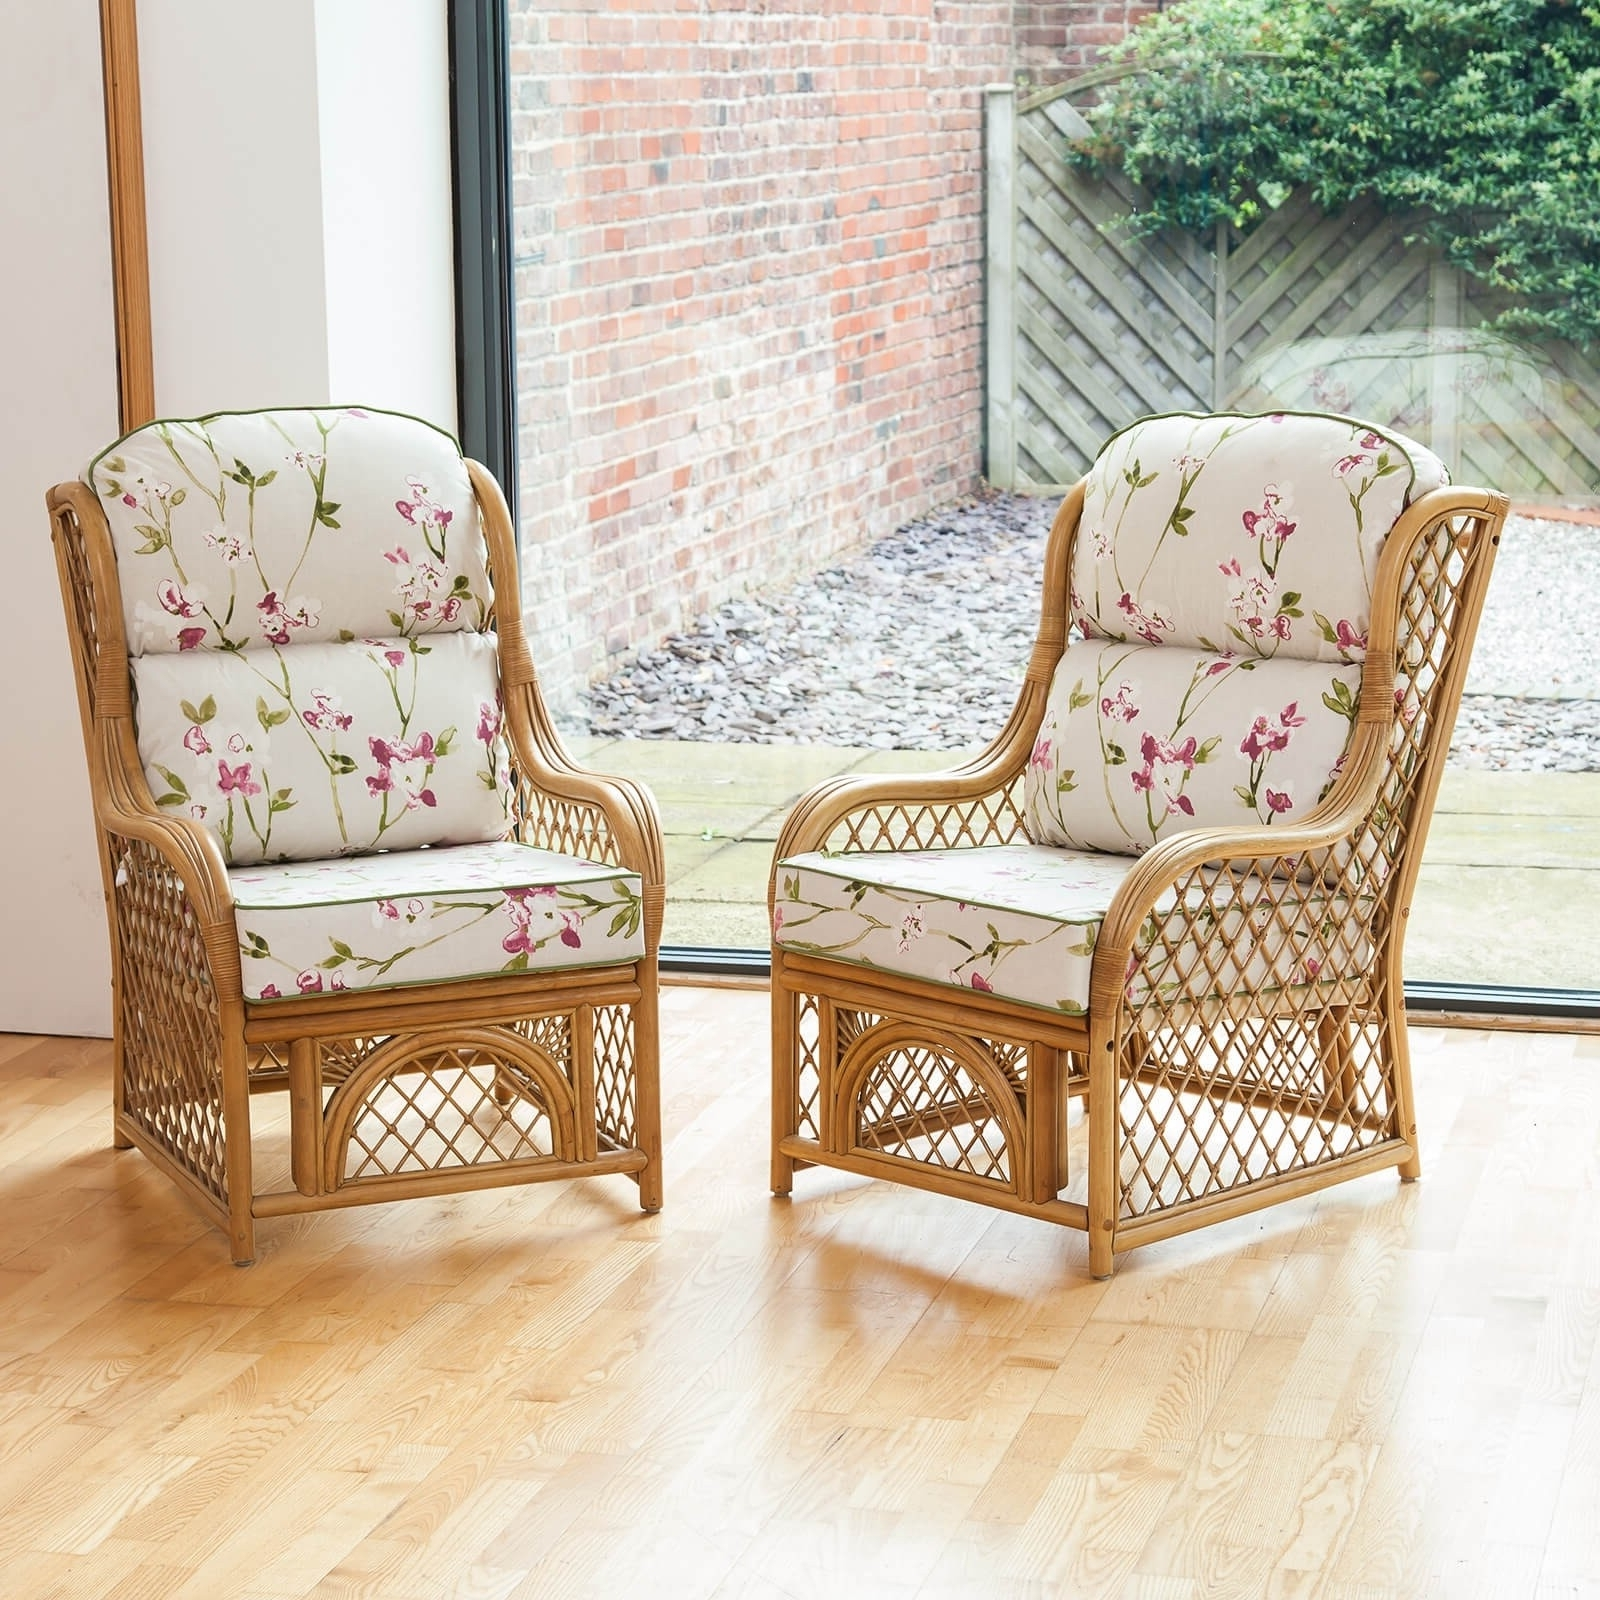 Chintz Sofas With Regard To Well Known Armchair : Chintz Drapes Chintz Fabricthe Yard Chintz Fabric (View 8 of 20)